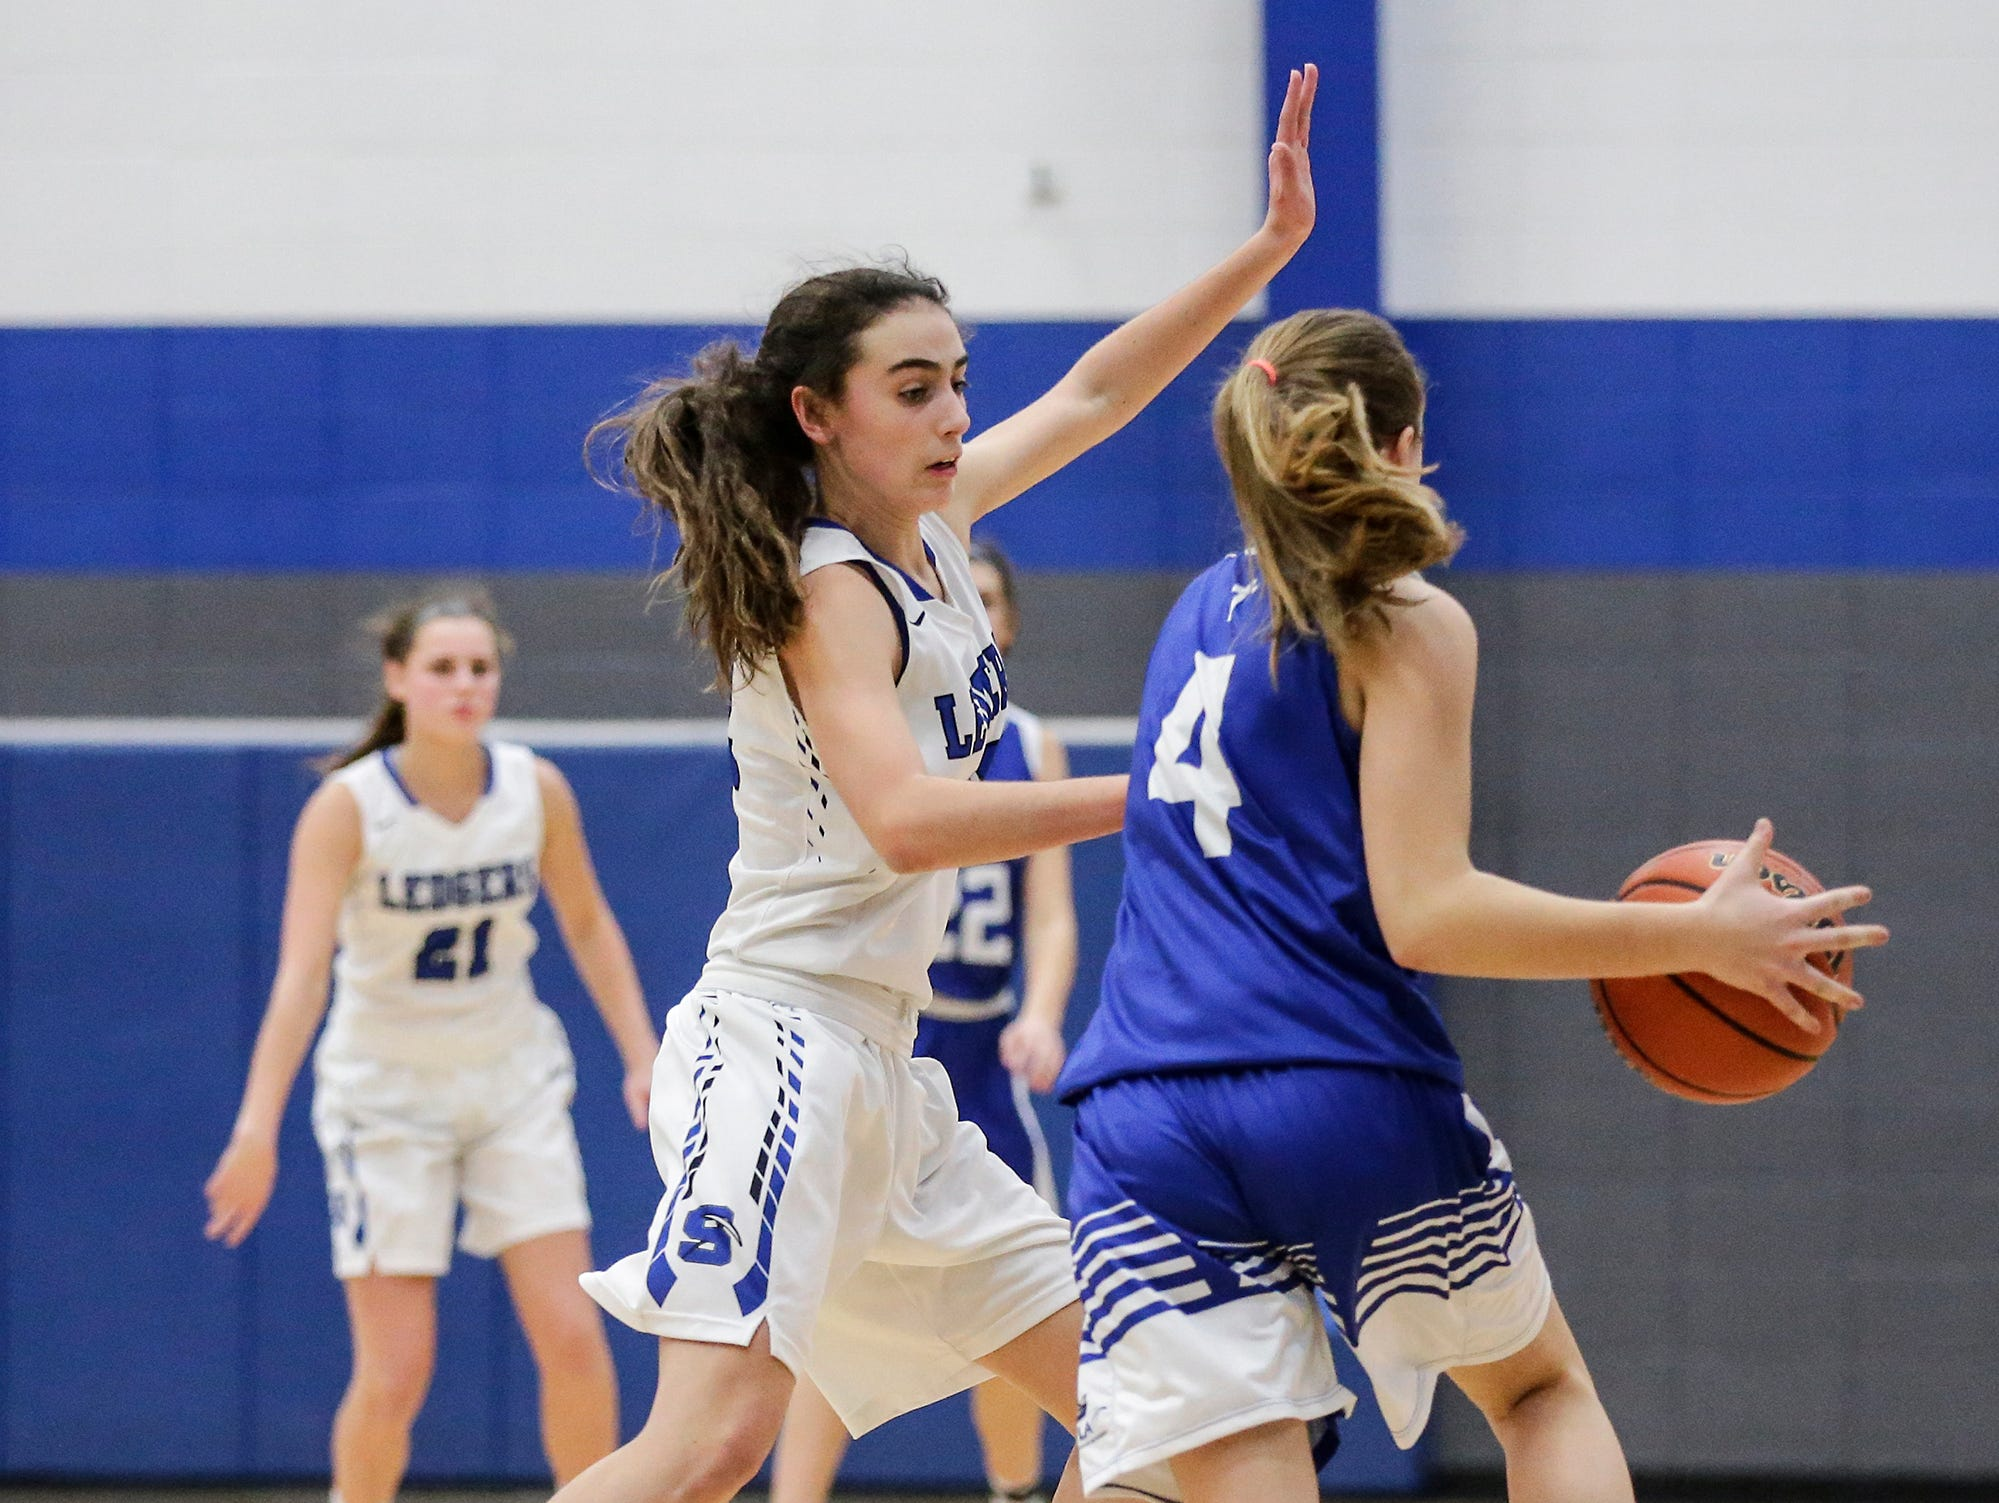 St. Mary's Springs Academy girls basketball's Isabelle Coon defends against Winnebago Lutheran Academy's Rylee Loehr during their game Tuesday, December 18, 2018 in Fond du Lac. Winnebago Lutheran Academy won the game 58-54. Doug Raflik/USA TODAY NETWORK-Wisconsin